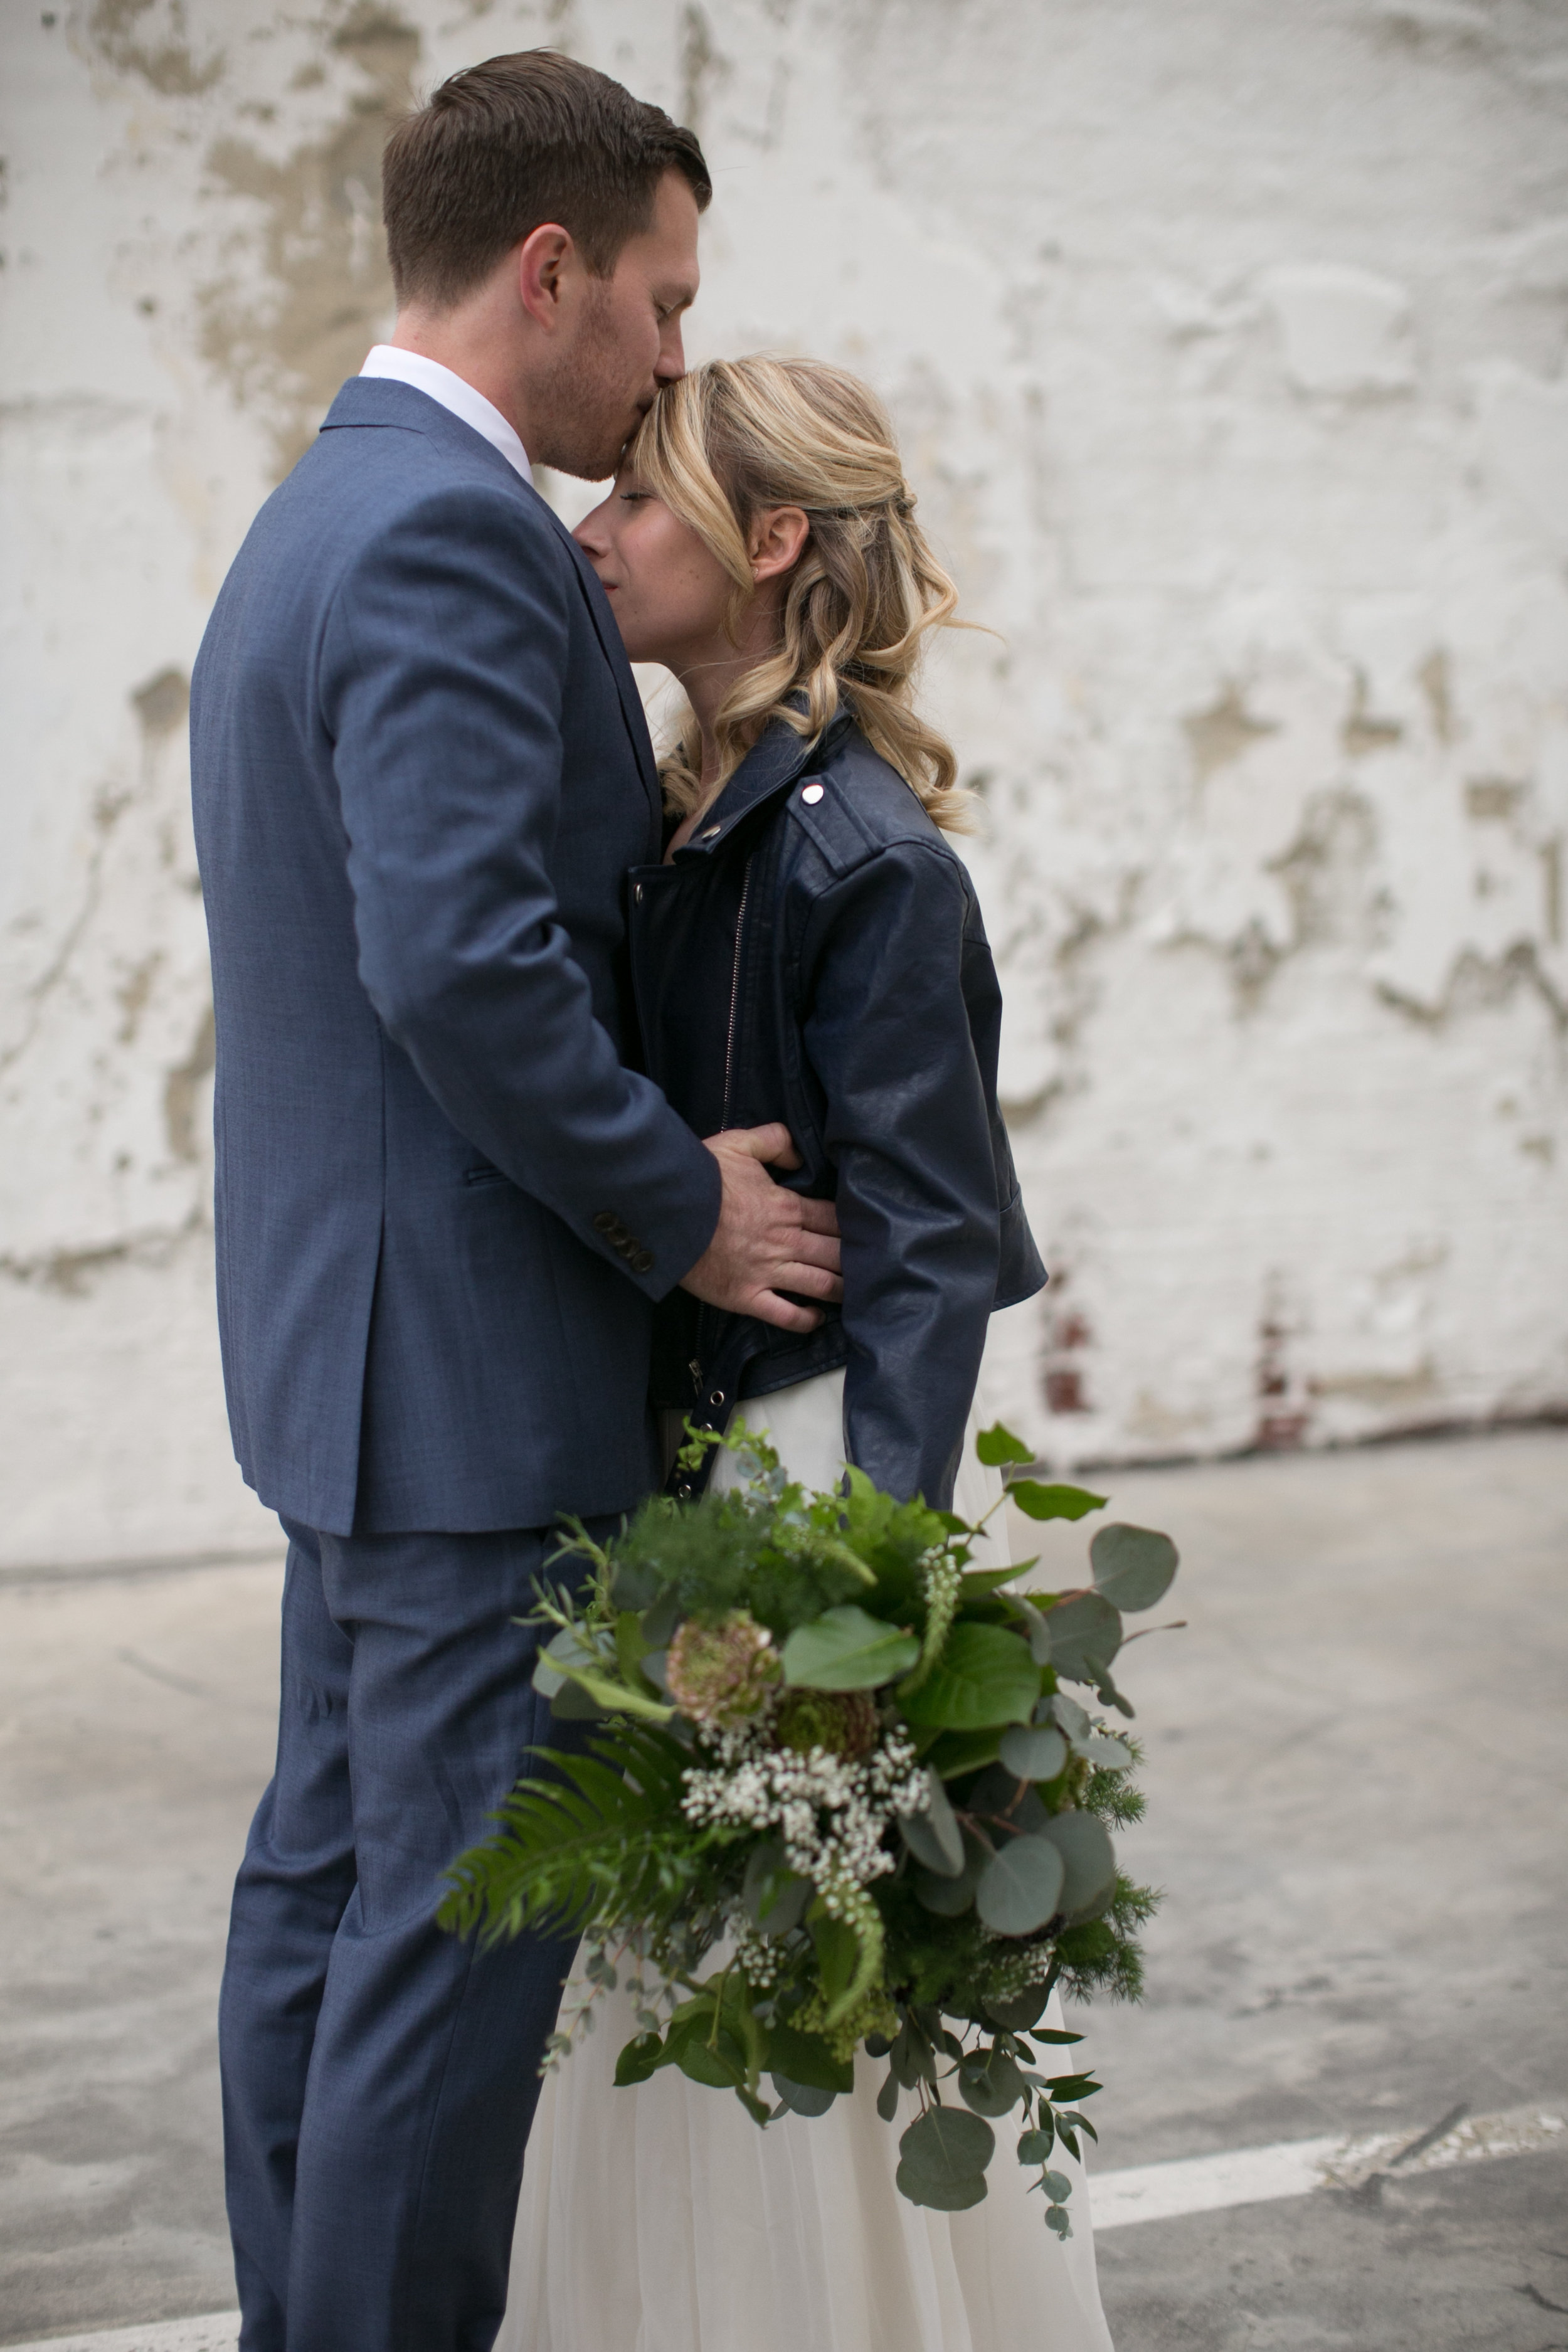 Bride and groom had a stunning navy and green winter wedding at The Loft On Pine in Long Beach, CA. The pops of rich colors matched the venues industrial vibe and the bride's giant bouquet of wild greens was pretty epic. The flowy BHLDN two piece paired with a leather jacket was perfect for the cooler weather but also looked pretty badass. Planning:@janealexandraevents Venue:@theloftonpine #JAE #longbeachweddingvenue #weddingplanning #theloftonpine #winterweddingideas